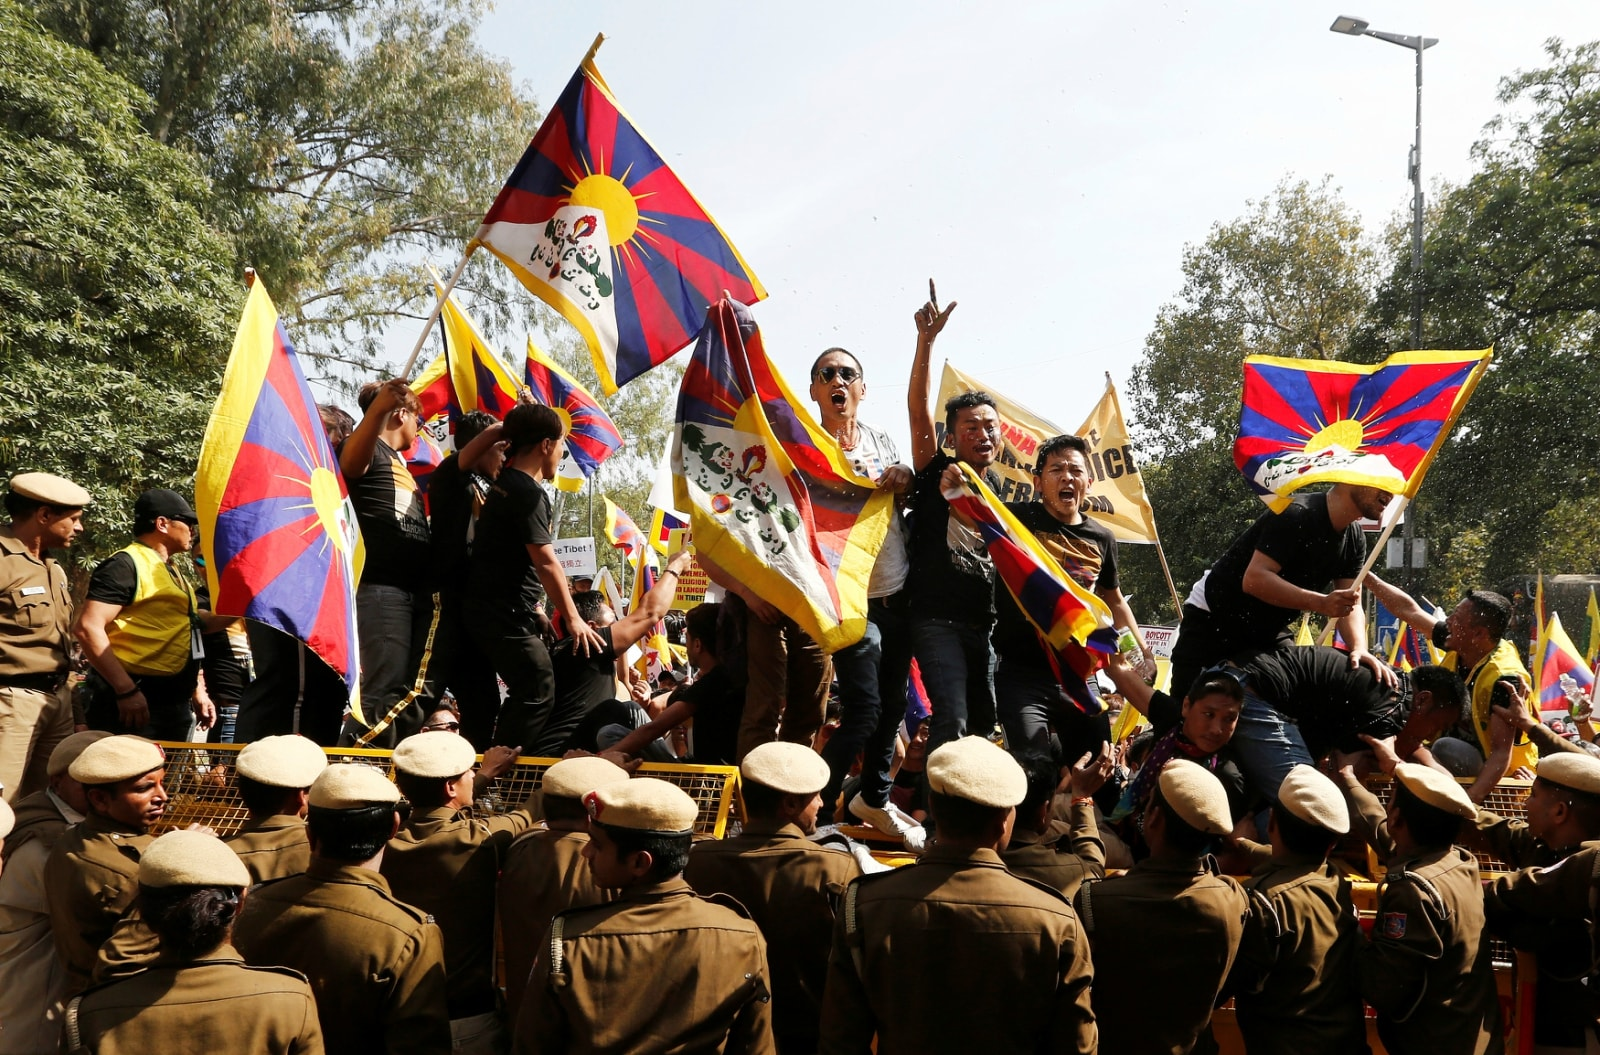 Tibetans shout slogans as they stand on a police barricade during a protest held to mark the 60th anniversary of the Tibetan uprising against Chinese rule, outside the Chinese embassy in New Delhi, India March 12, 2019. REUTERS/Adnan Abidi